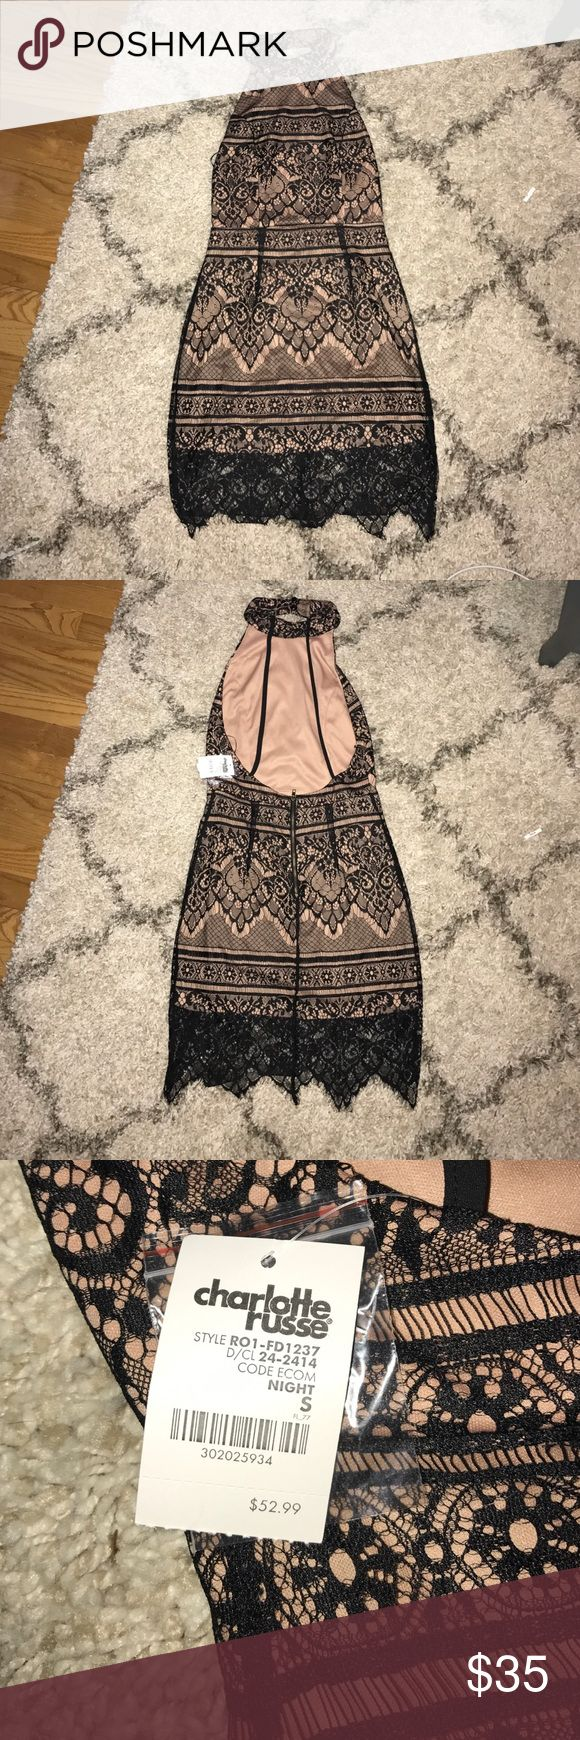 Charlotte Russe Bodycon Lace Dress Open back Bodycon dress Charlotte Russe Dresses Mini